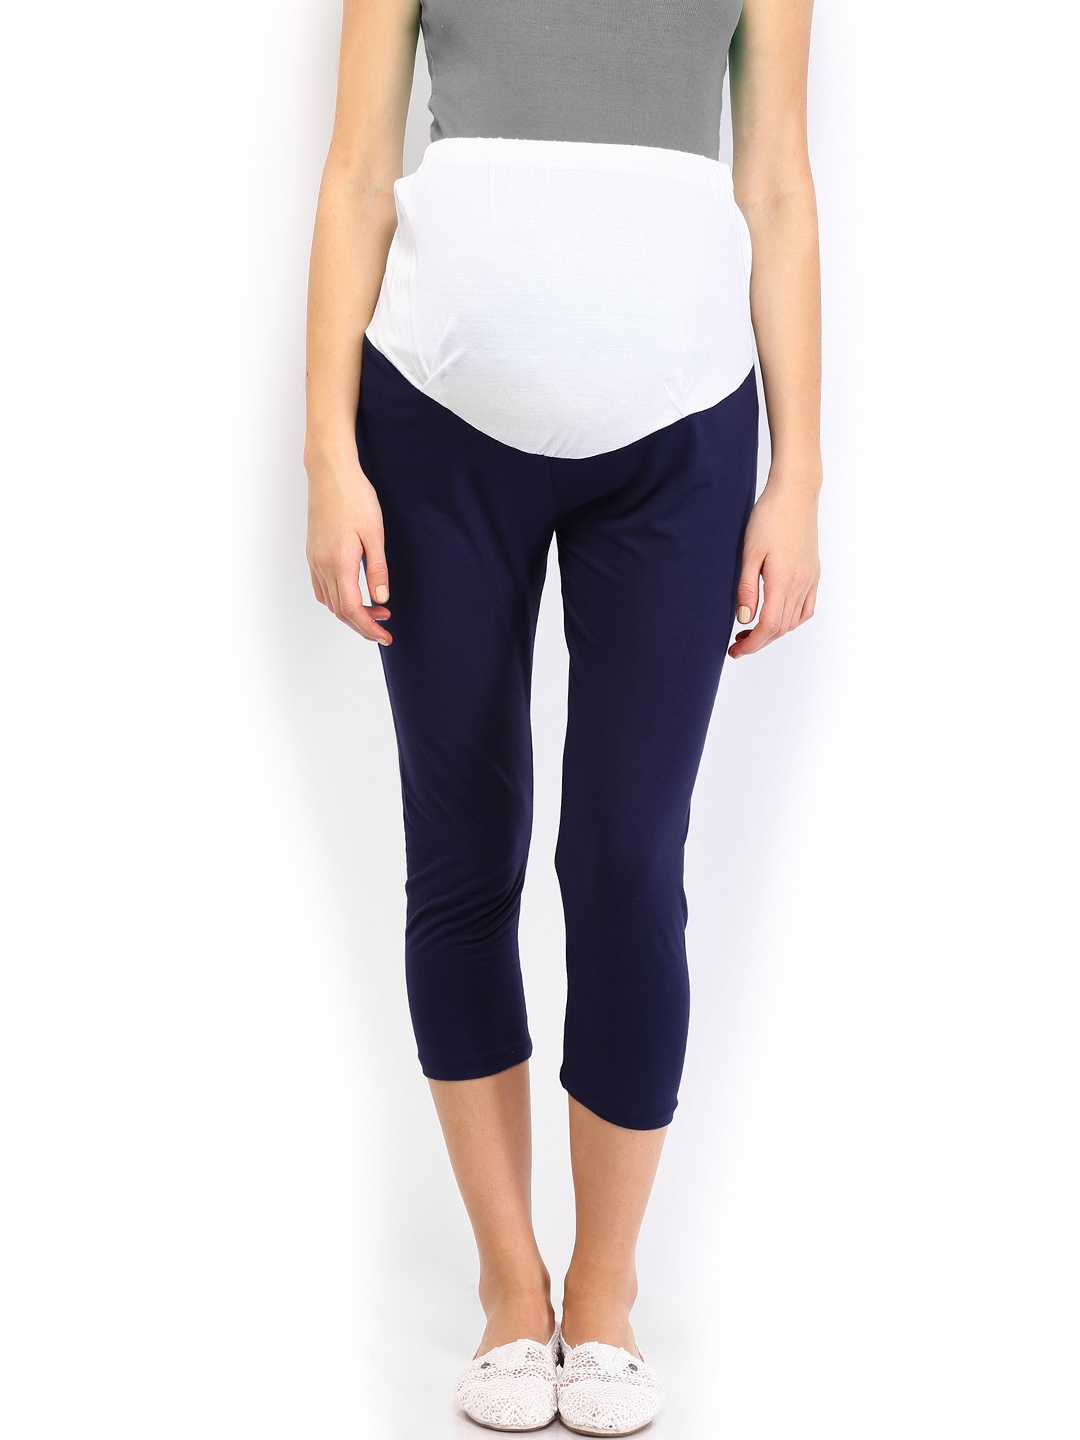 These heathered maternity leggings are perfect for everyday wear. From going to the gym to running errands, you'll love these leggings. A sleek look will keep you stylish during all your activities, while an elastic waistband will keep you comfortable. Pair these with a maternity tank and put on your running shoes for a complete active wear ensemble.